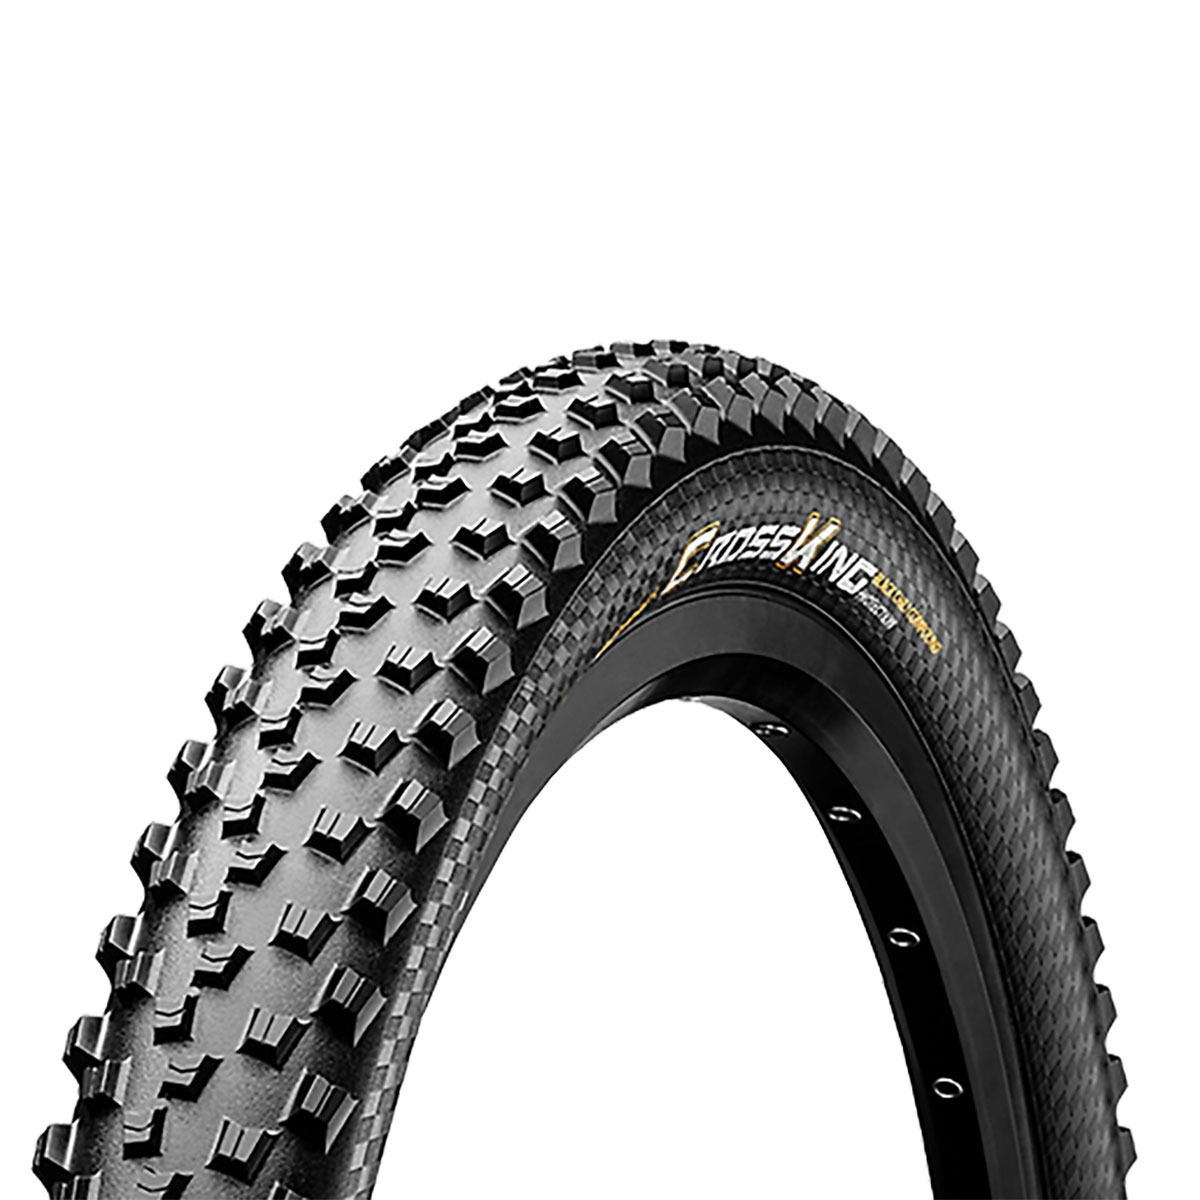 Pneu Mtb Continental Cross King Pure Grip 29er 2.3 Kevlar Tubeless Preto